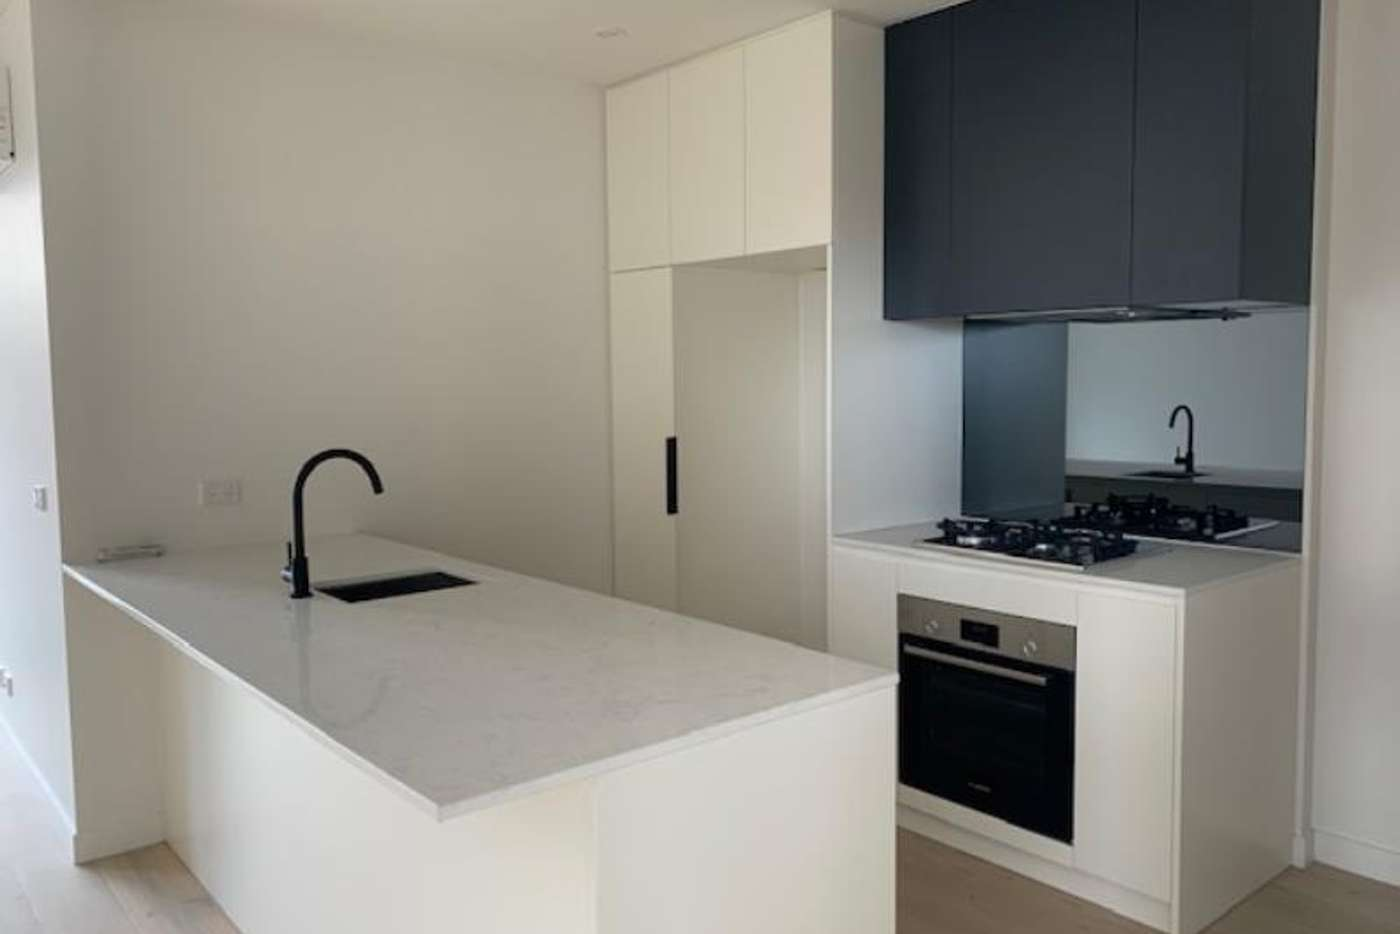 Main view of Homely apartment listing, 110/2 Joseph Road, Footscray VIC 3011